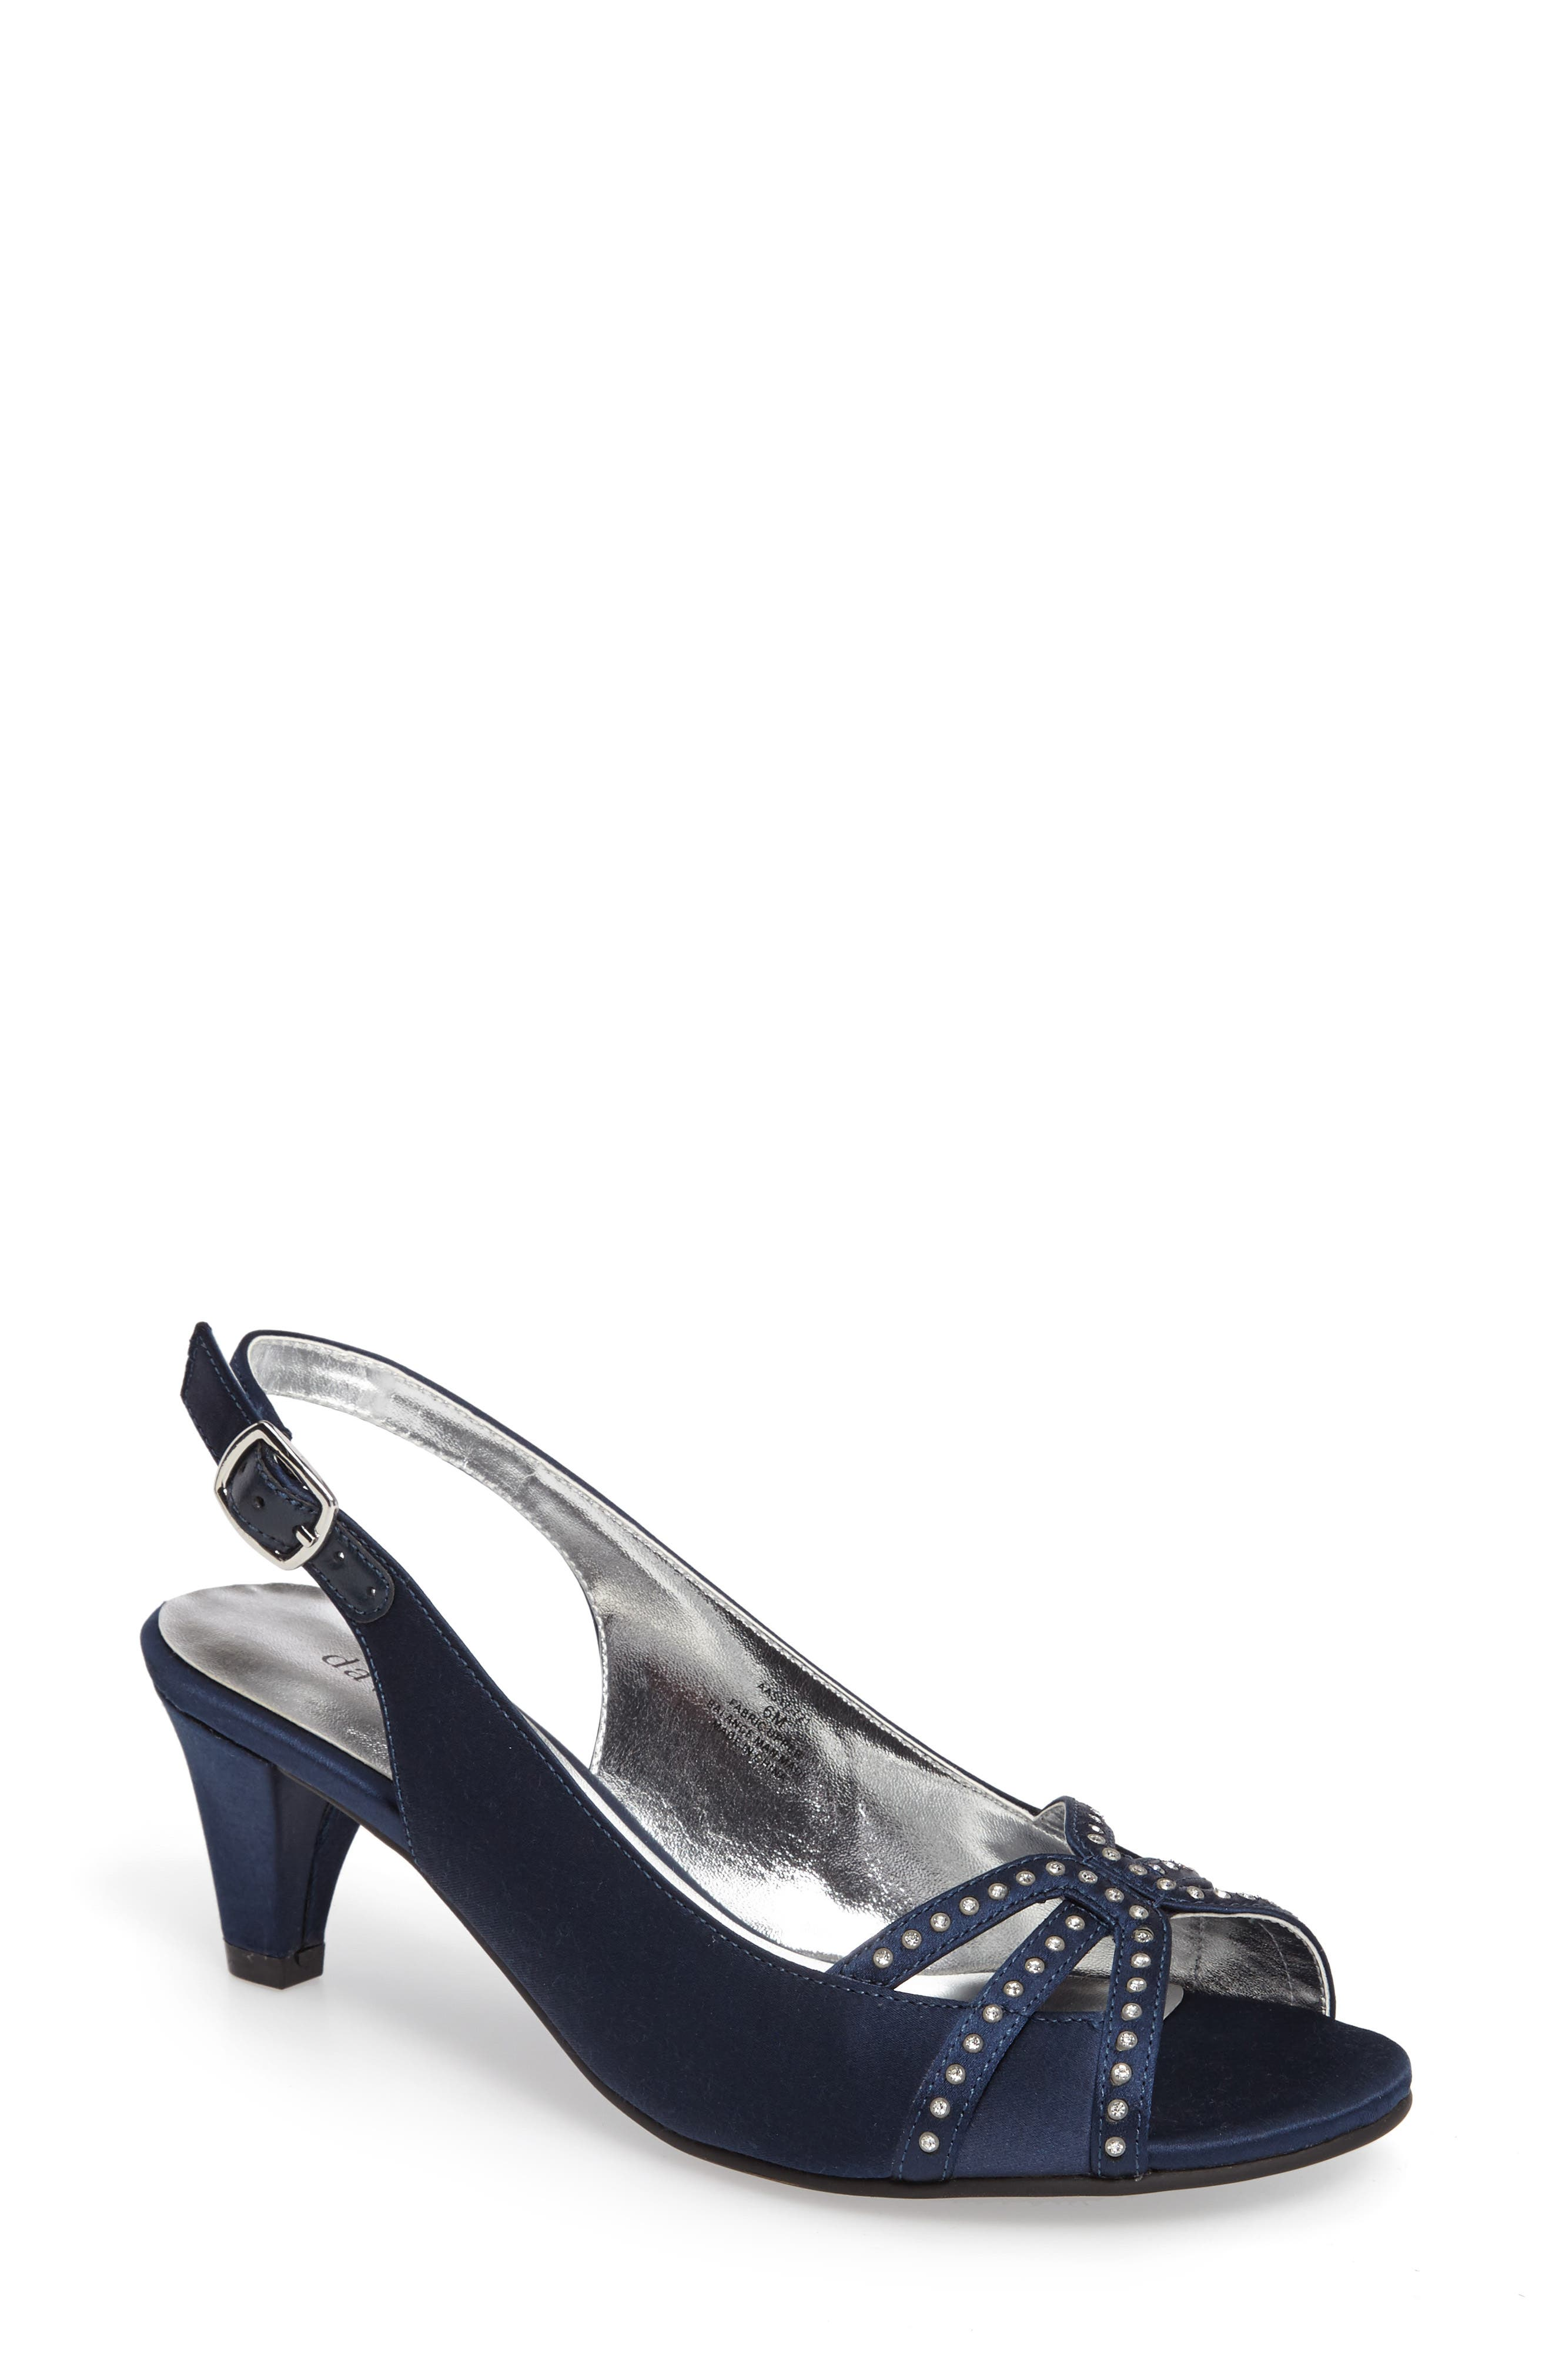 Regal Embellished Slingback Sandal,                         Main,                         color, NAVY FABRIC